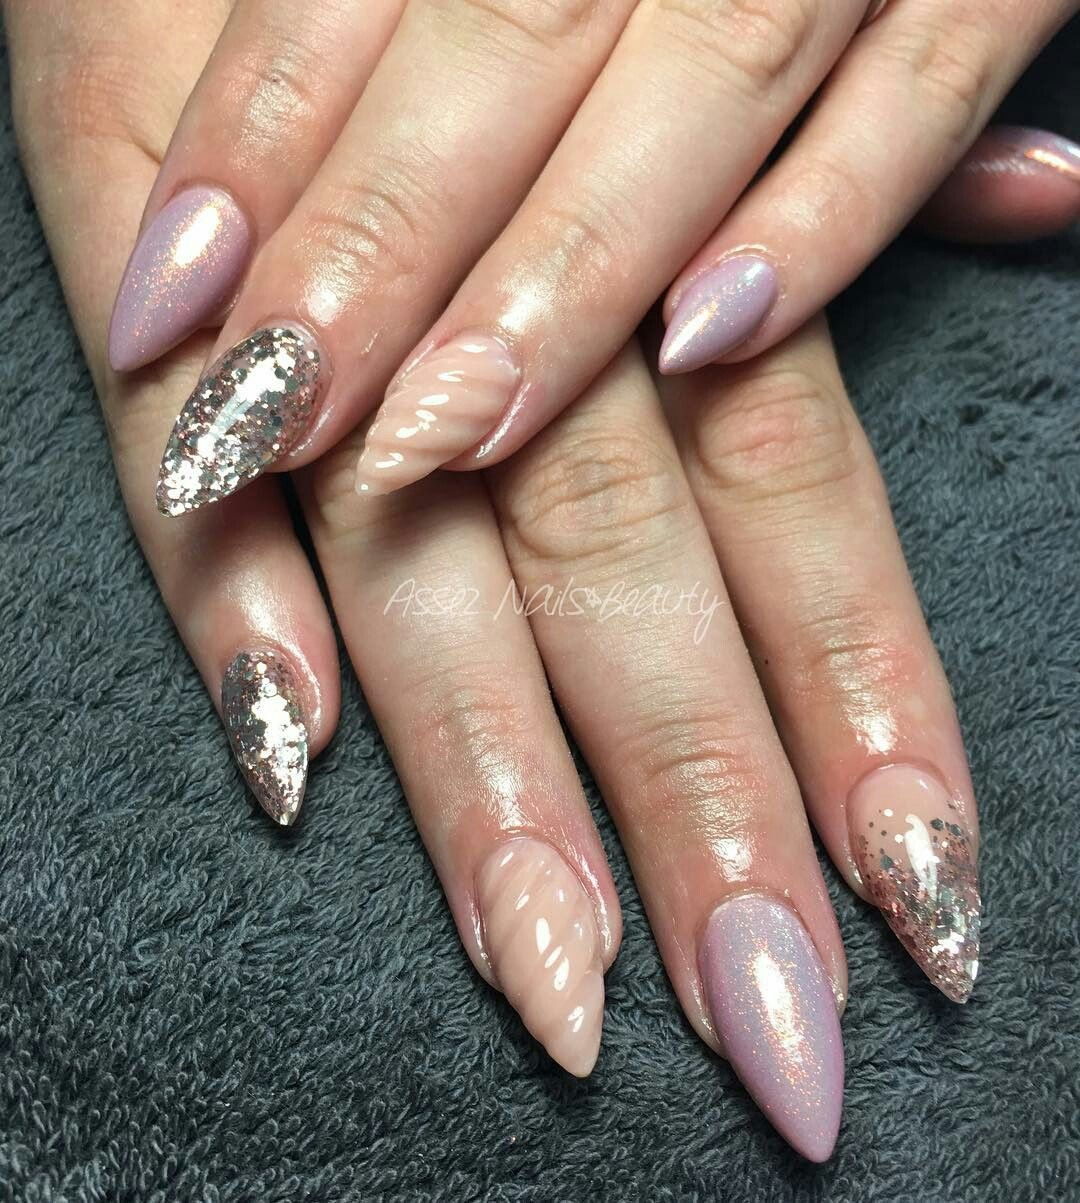 Pin von Erica Concepcion auf Nails (how to\'s & looks) | Pinterest ...